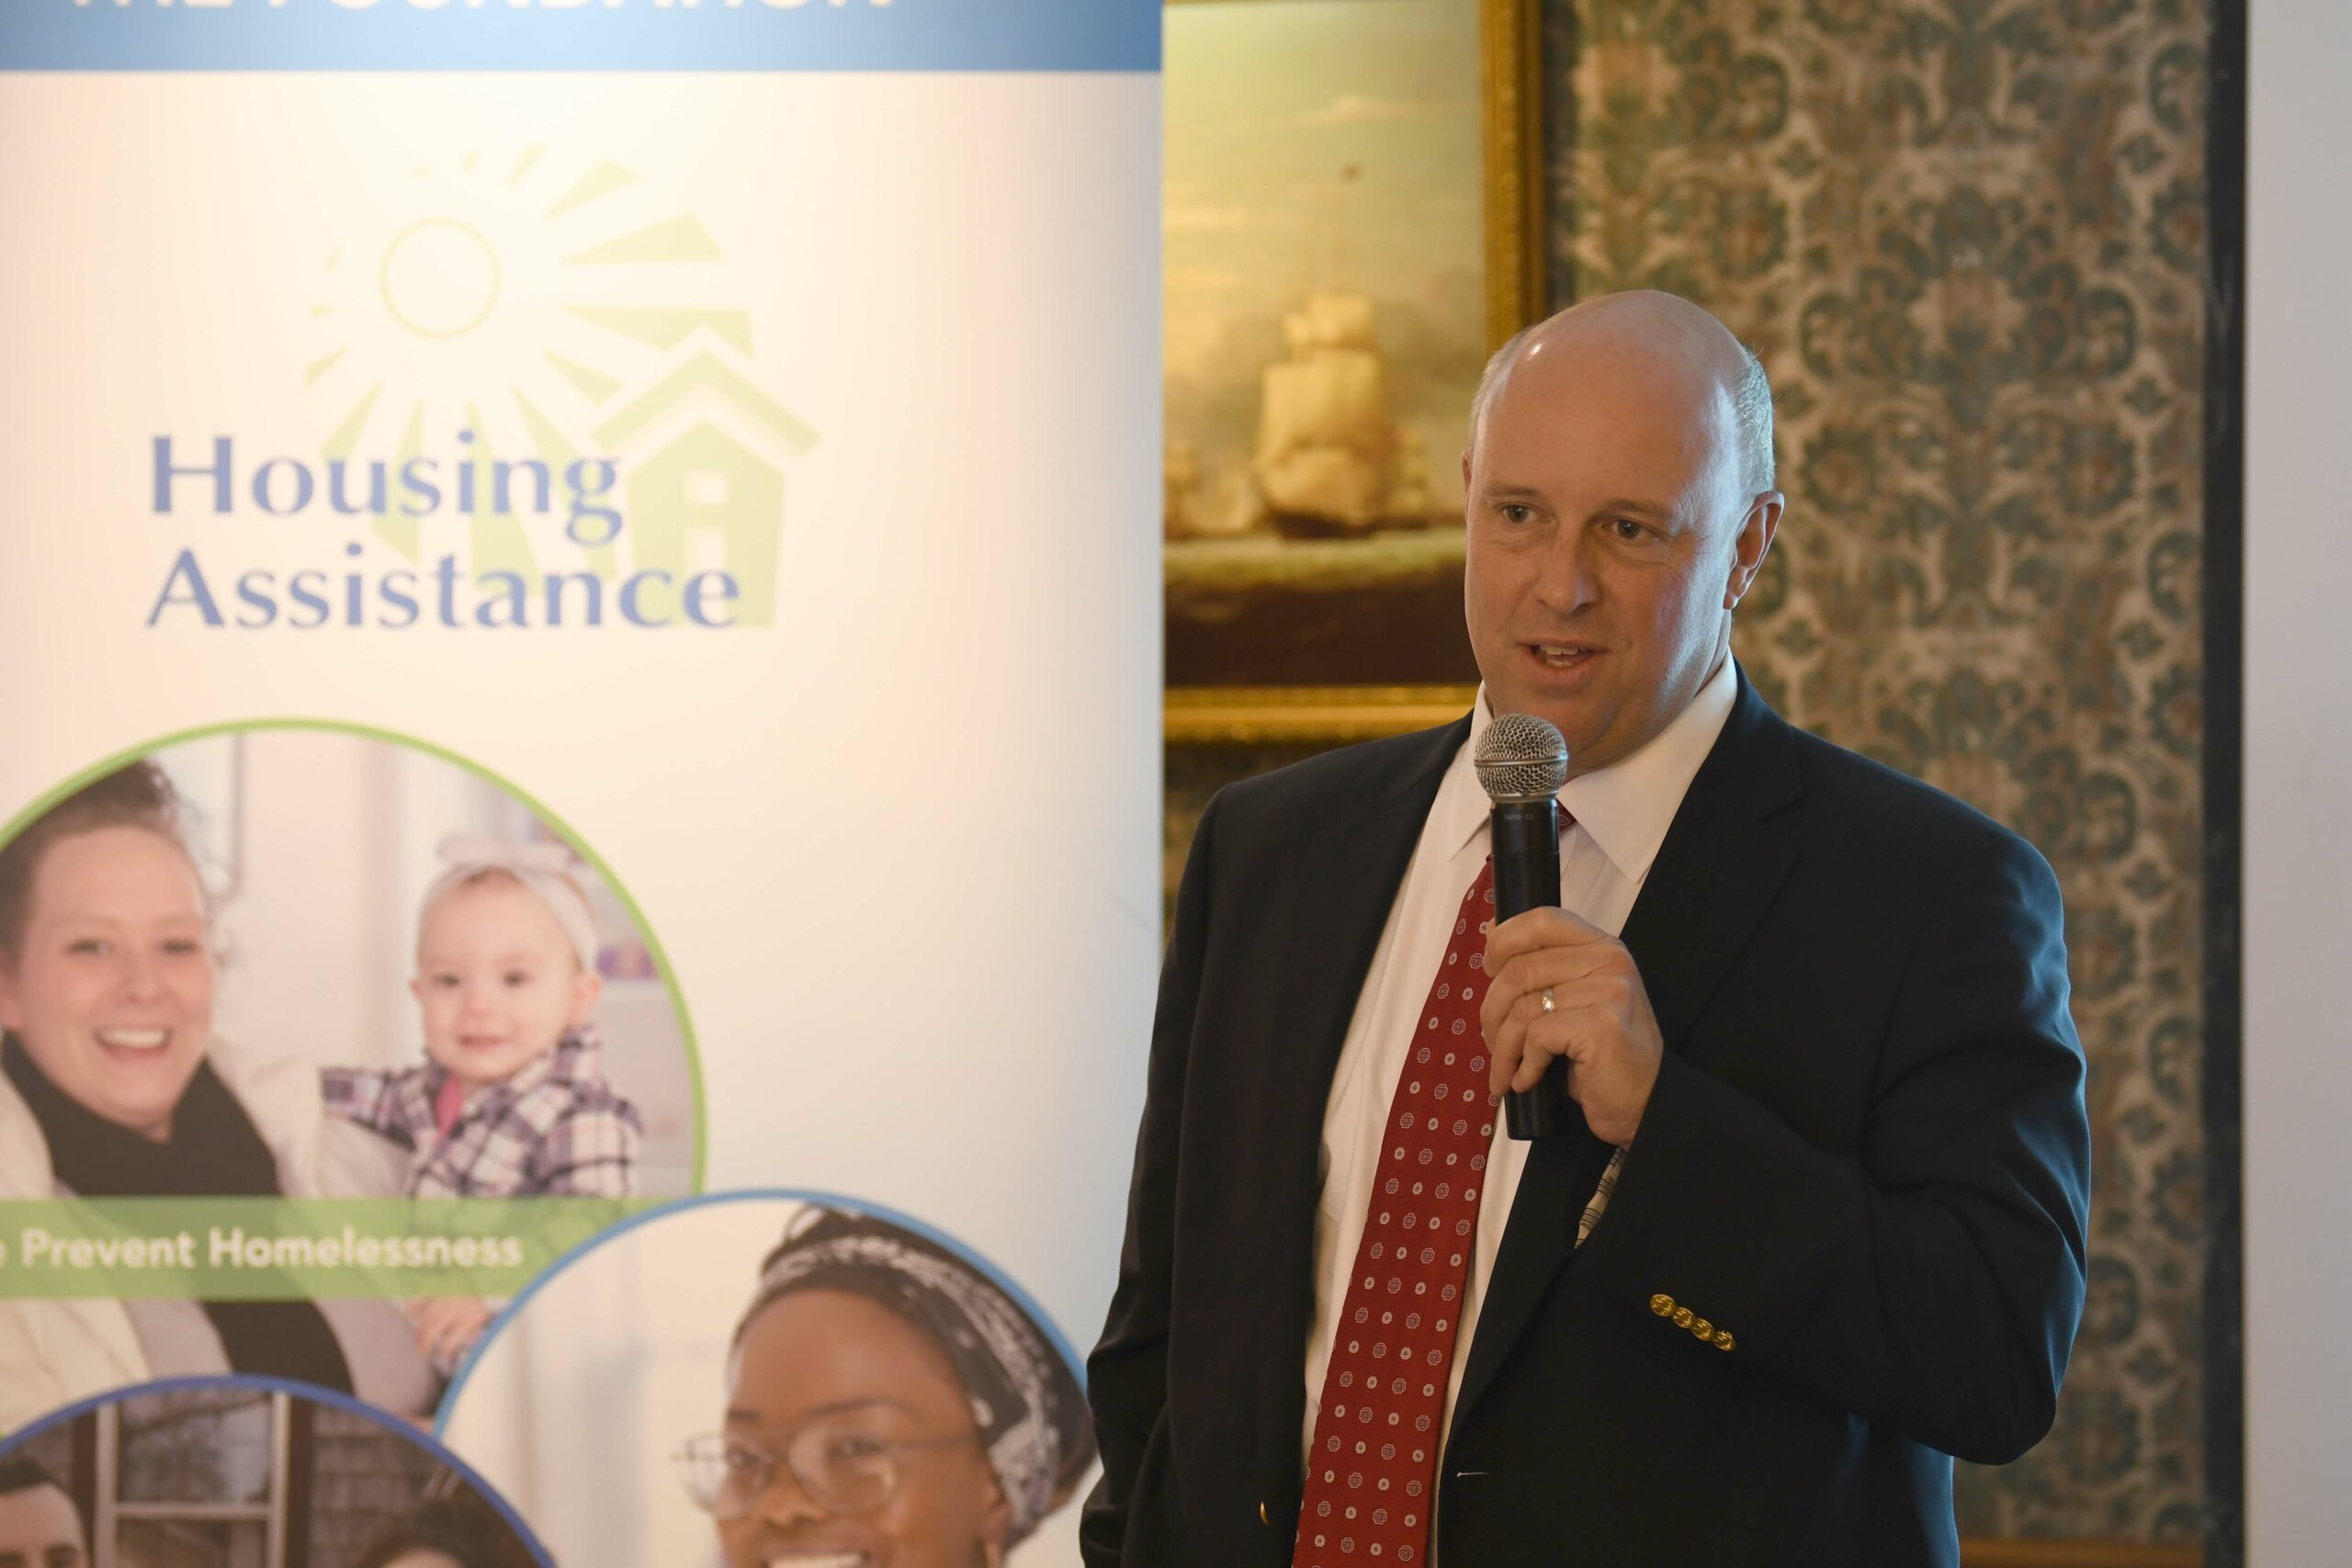 Mike Kennealy gives the keynote speech at the 2019 Cape Housing Institute.